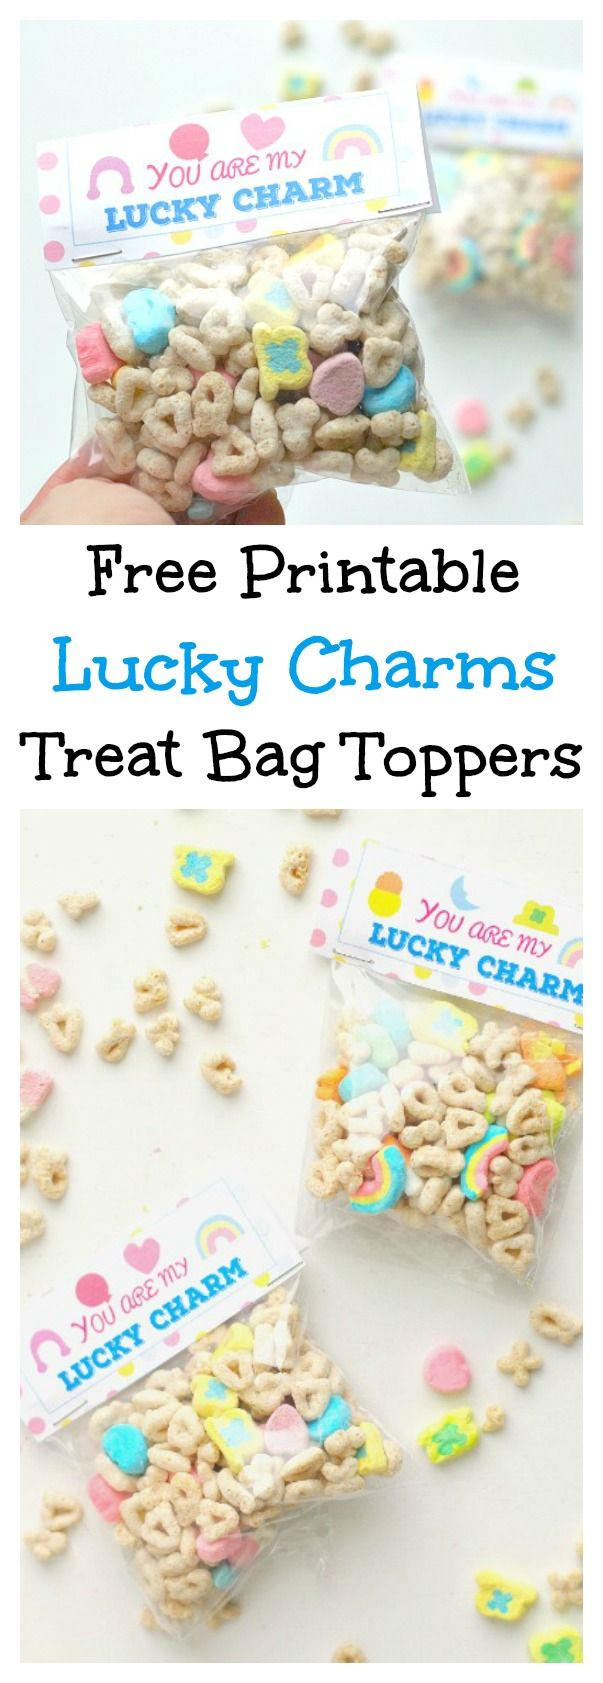 Free Printable Lucky Charms Treat Bag Toppers